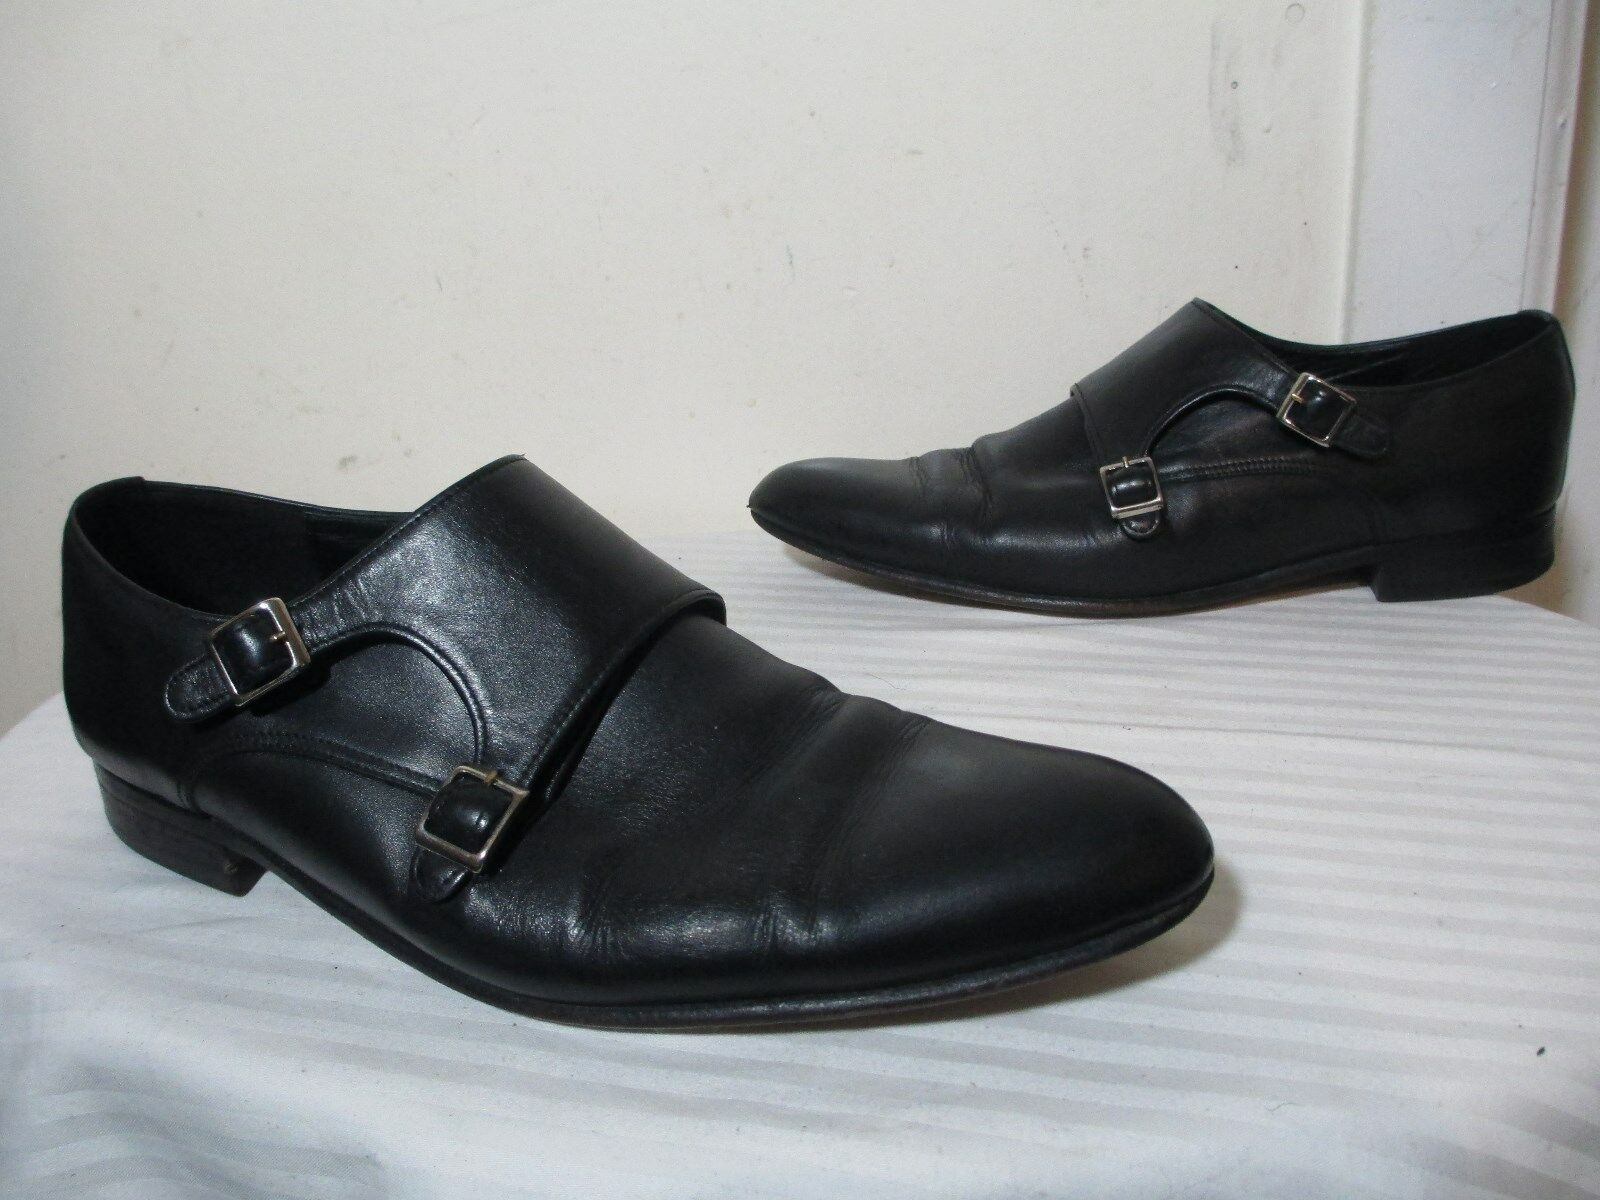 SUARTE HANDMADE SHOES MEN'S BLACK LEATHER DOUBLE MONK DRESS SHOES SZ 11 - 11.5